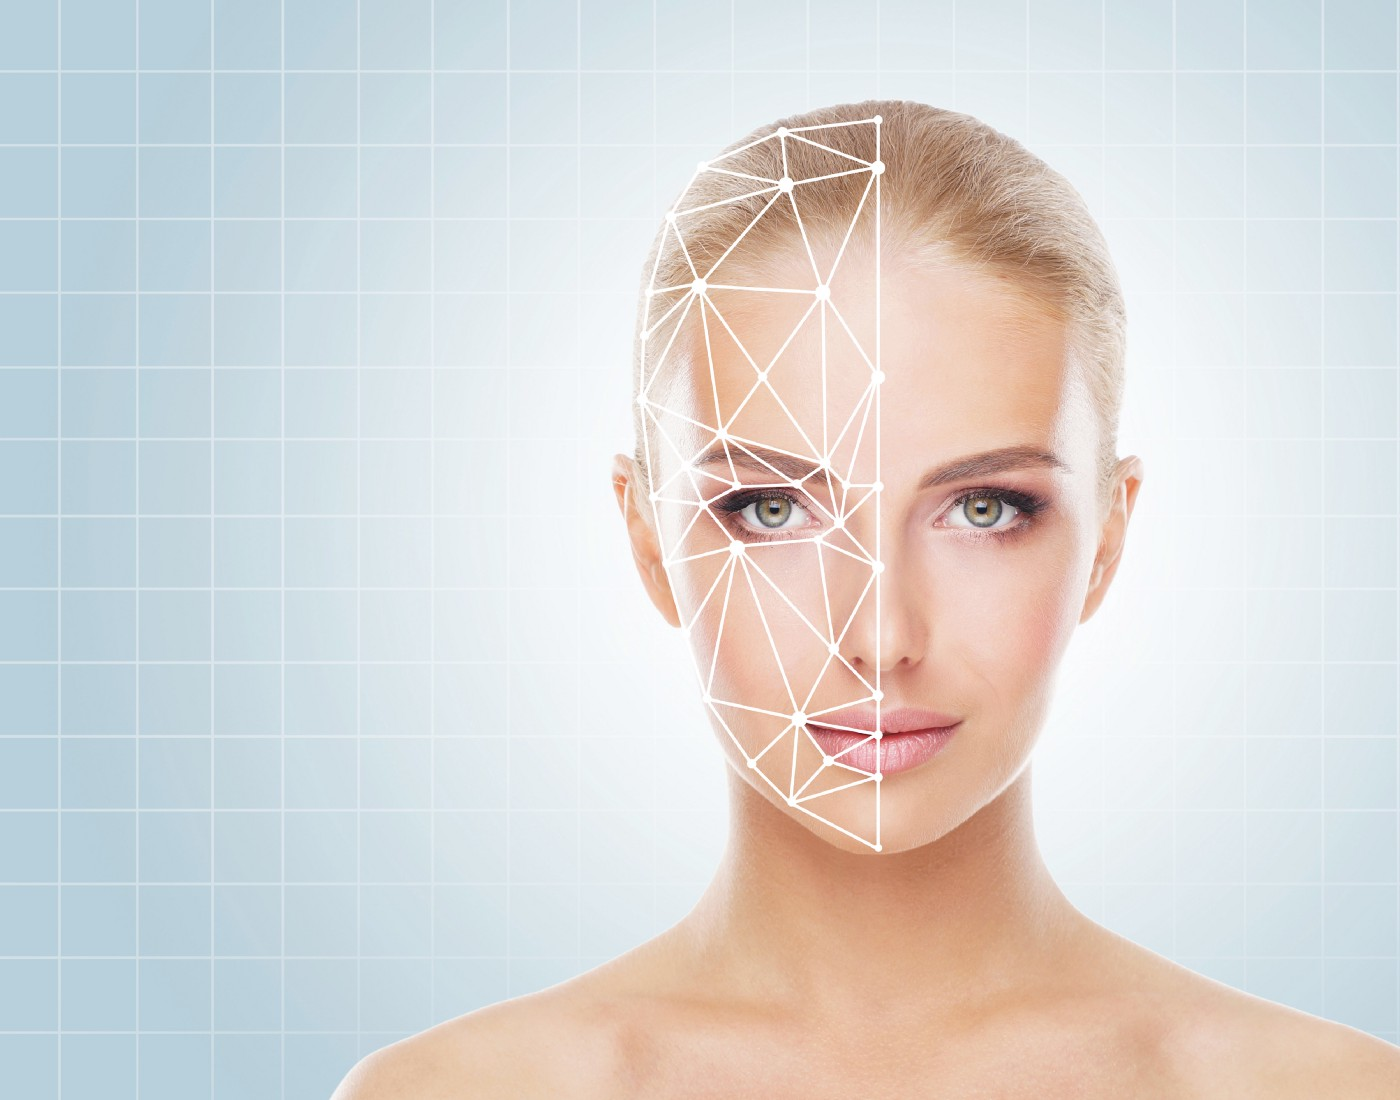 Beauty meets Artificial Intelligence